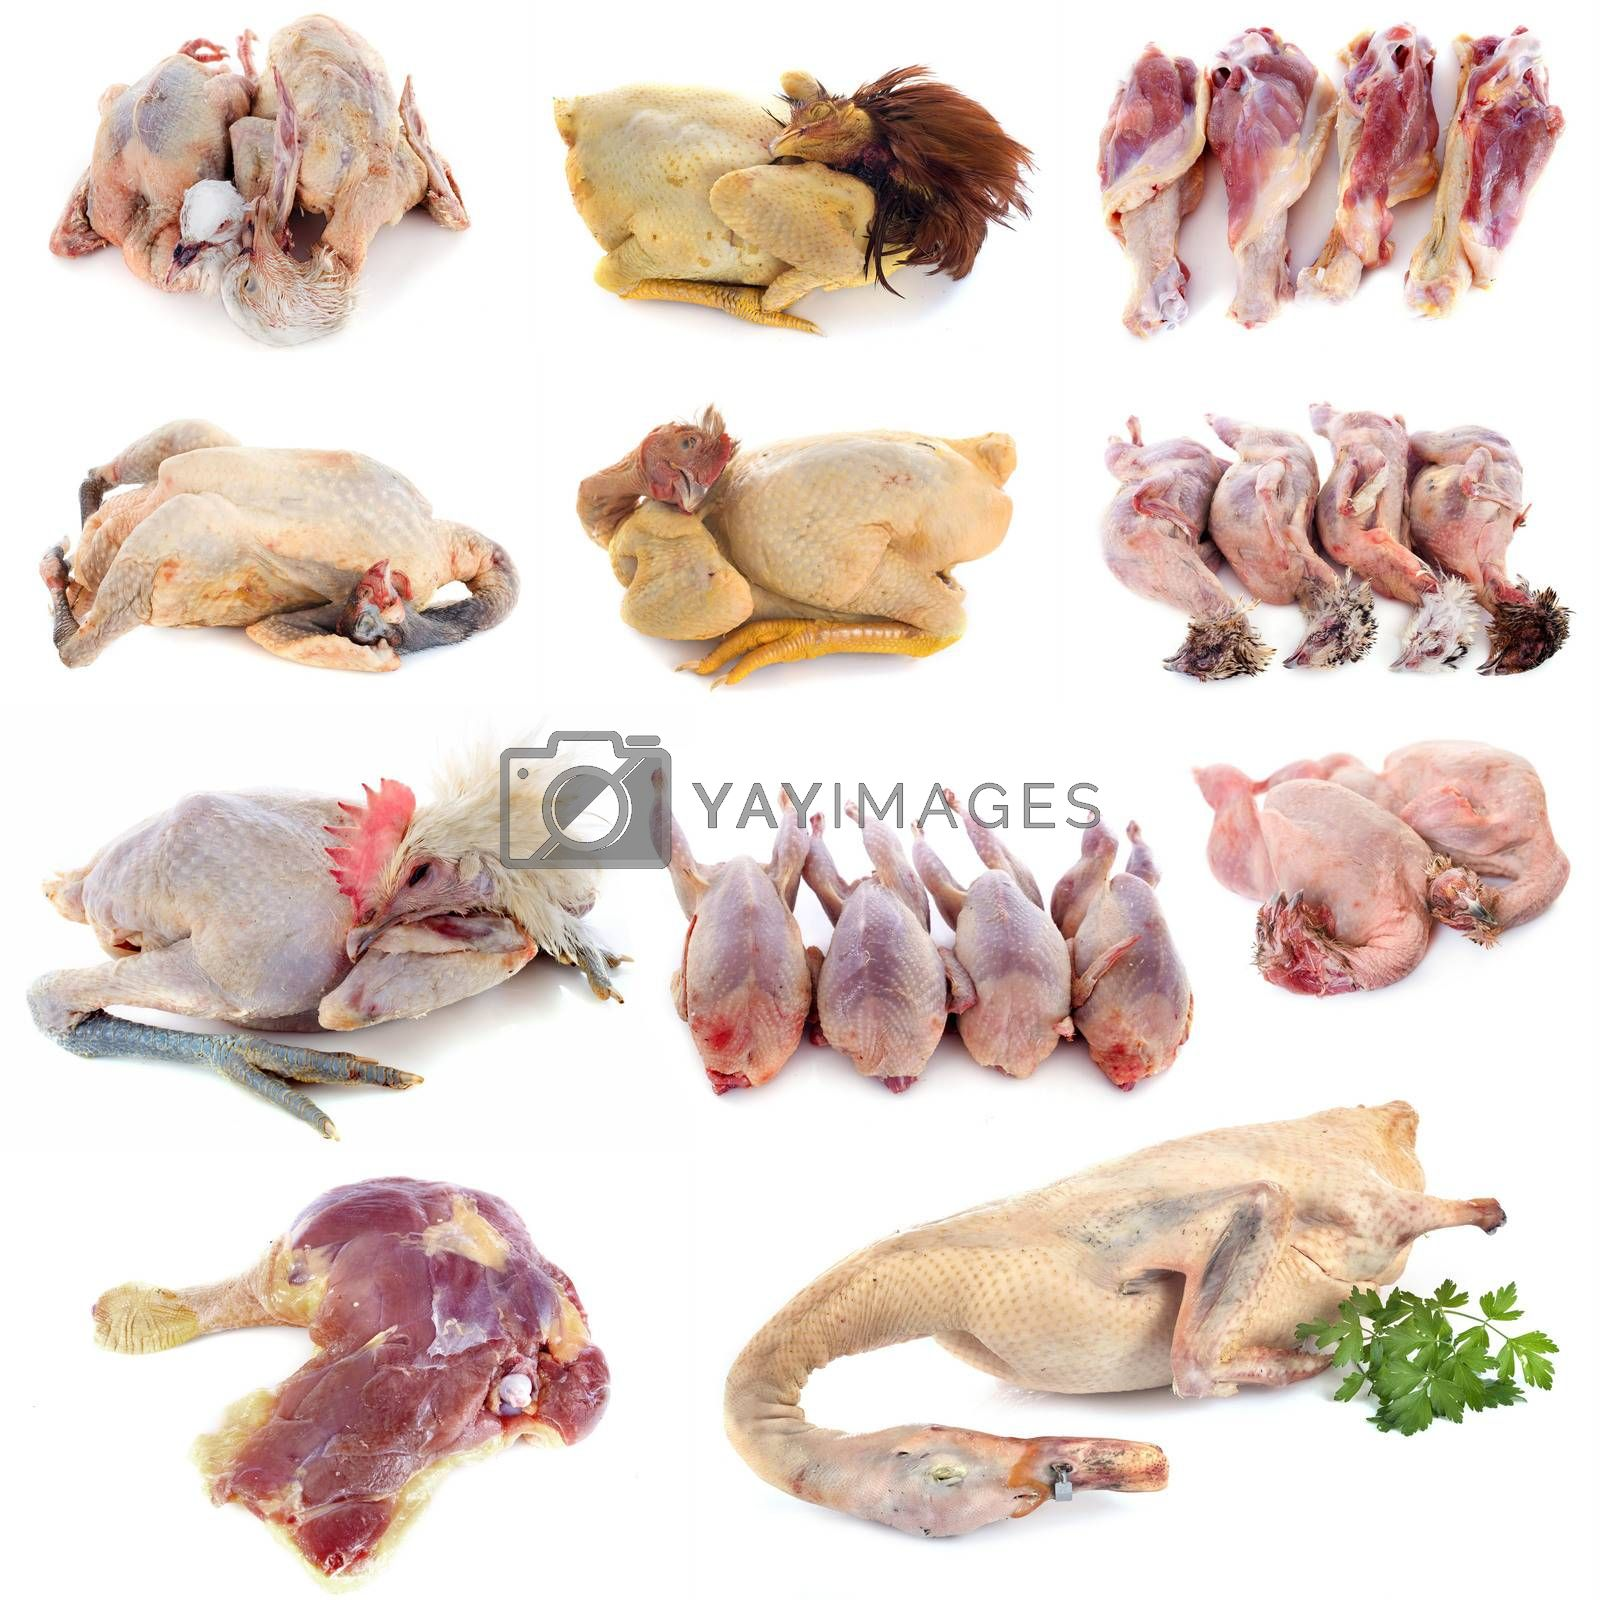 poultry meat in front of white background